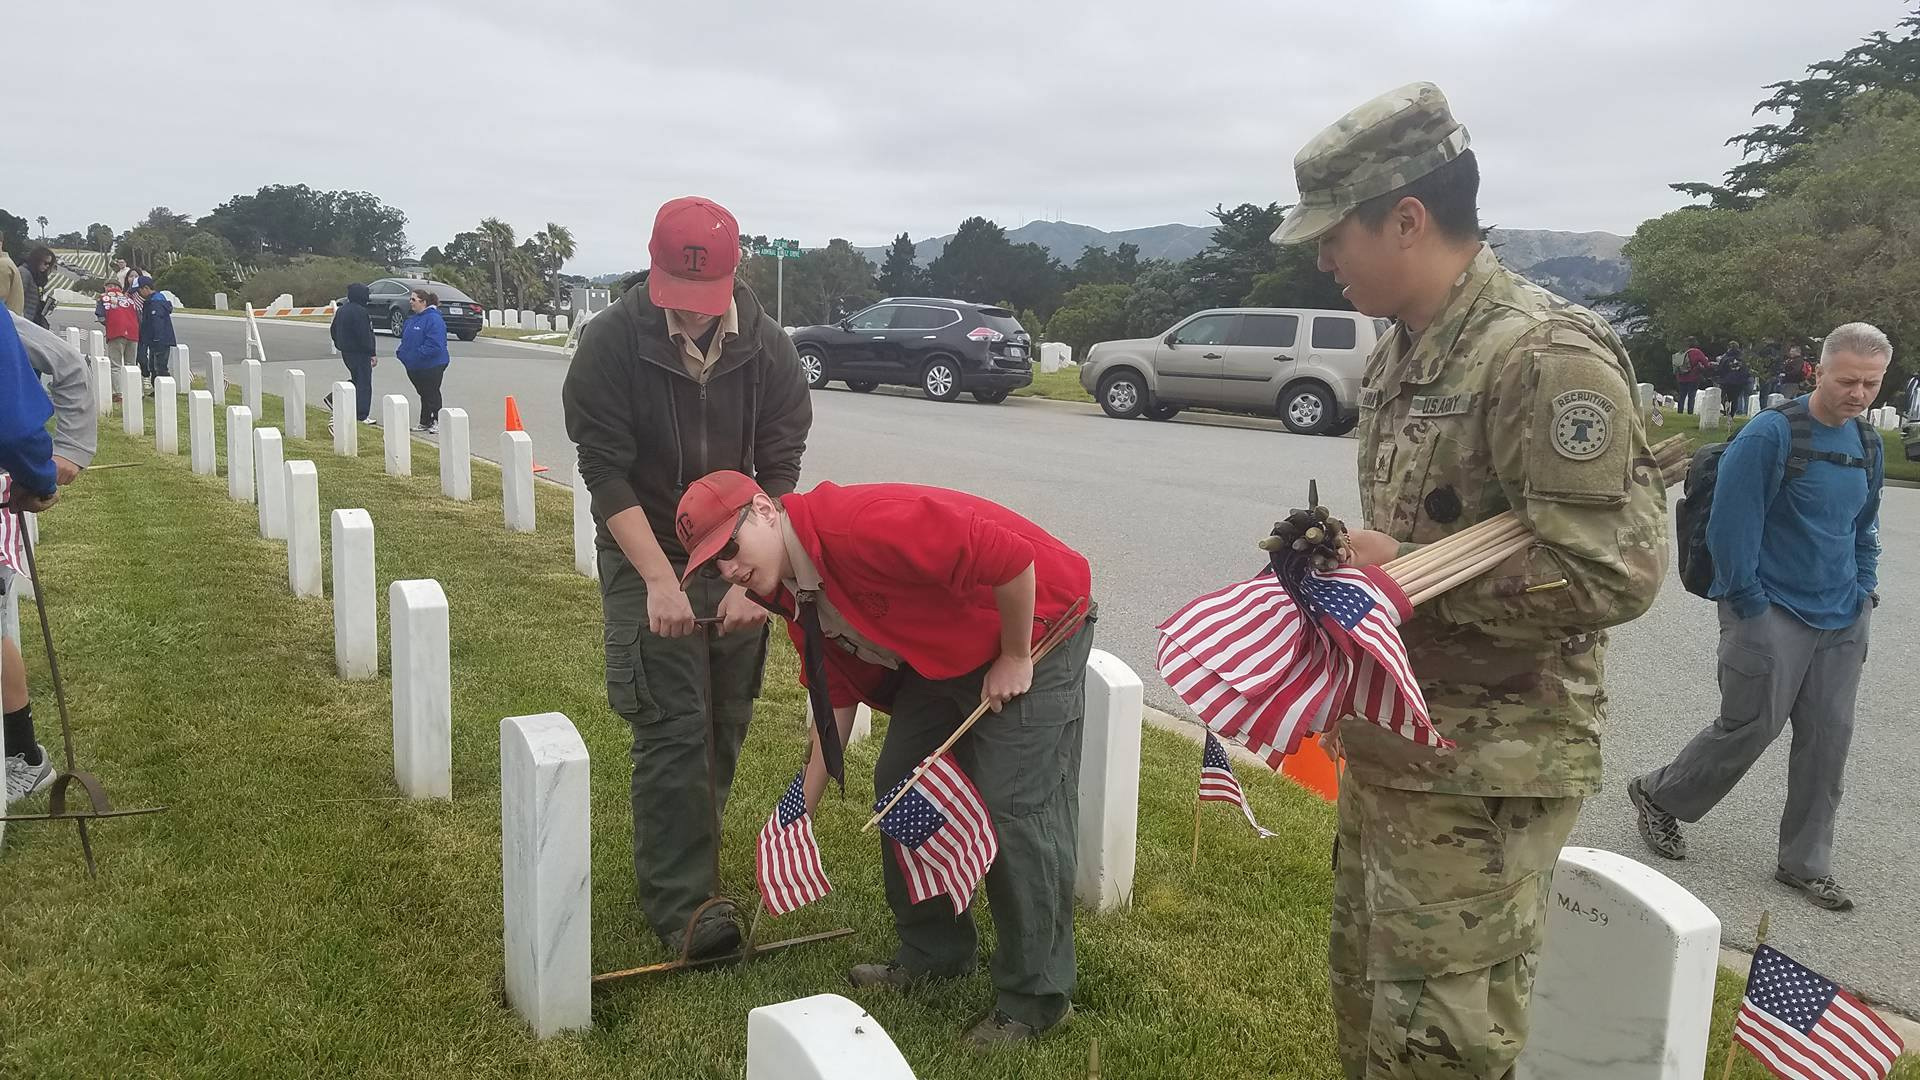 Local Scout Troops Place Flags on Graves at Golden Gate National Cemetery; Annual Memorial Day Service